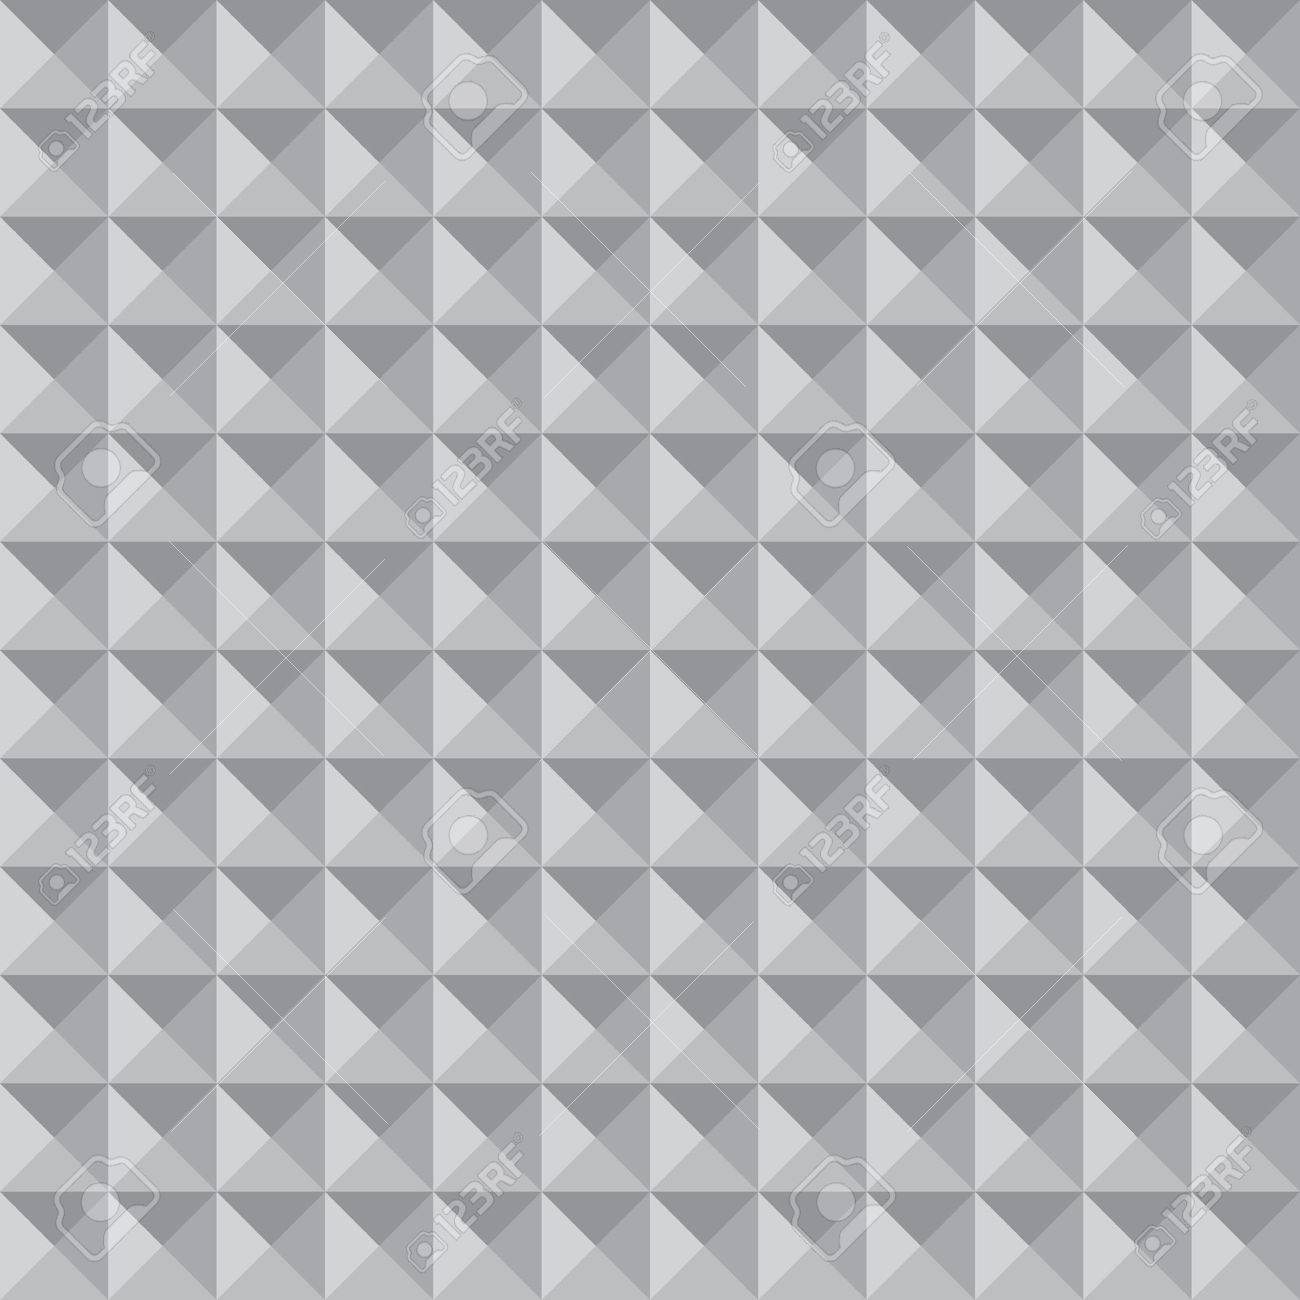 Monochrome Triangles Vector Seamless Pattern Volume Optical Illusion Shades Of Grey Stock Vector